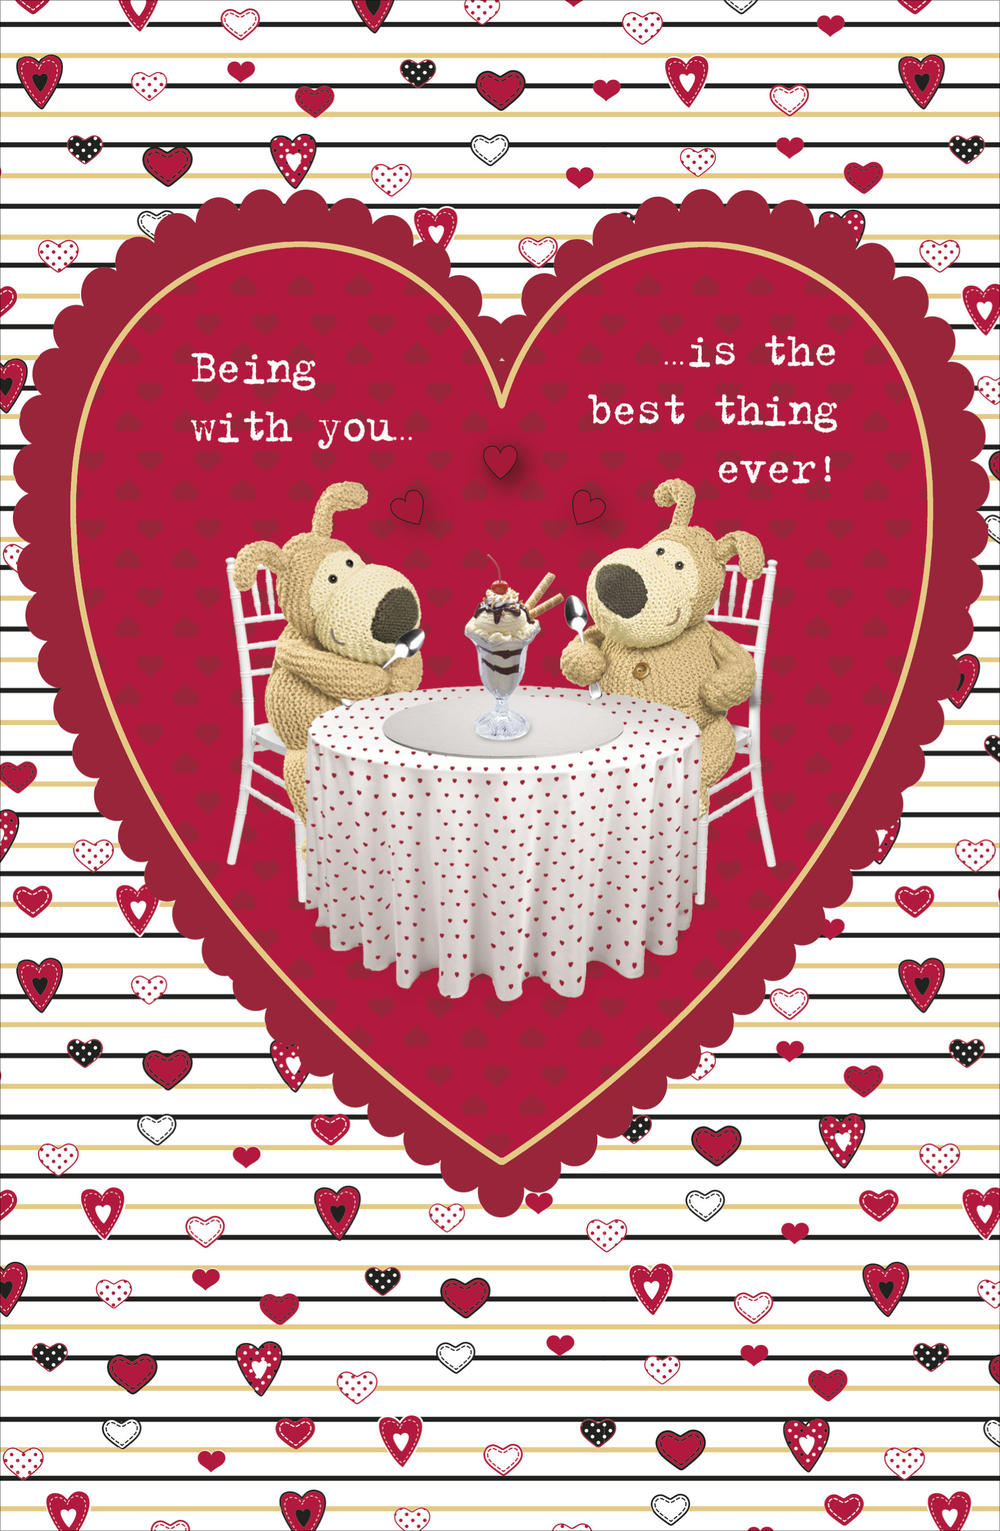 Boofle Best Thing Ever Valentine's Day Card Cute Greeting Cards